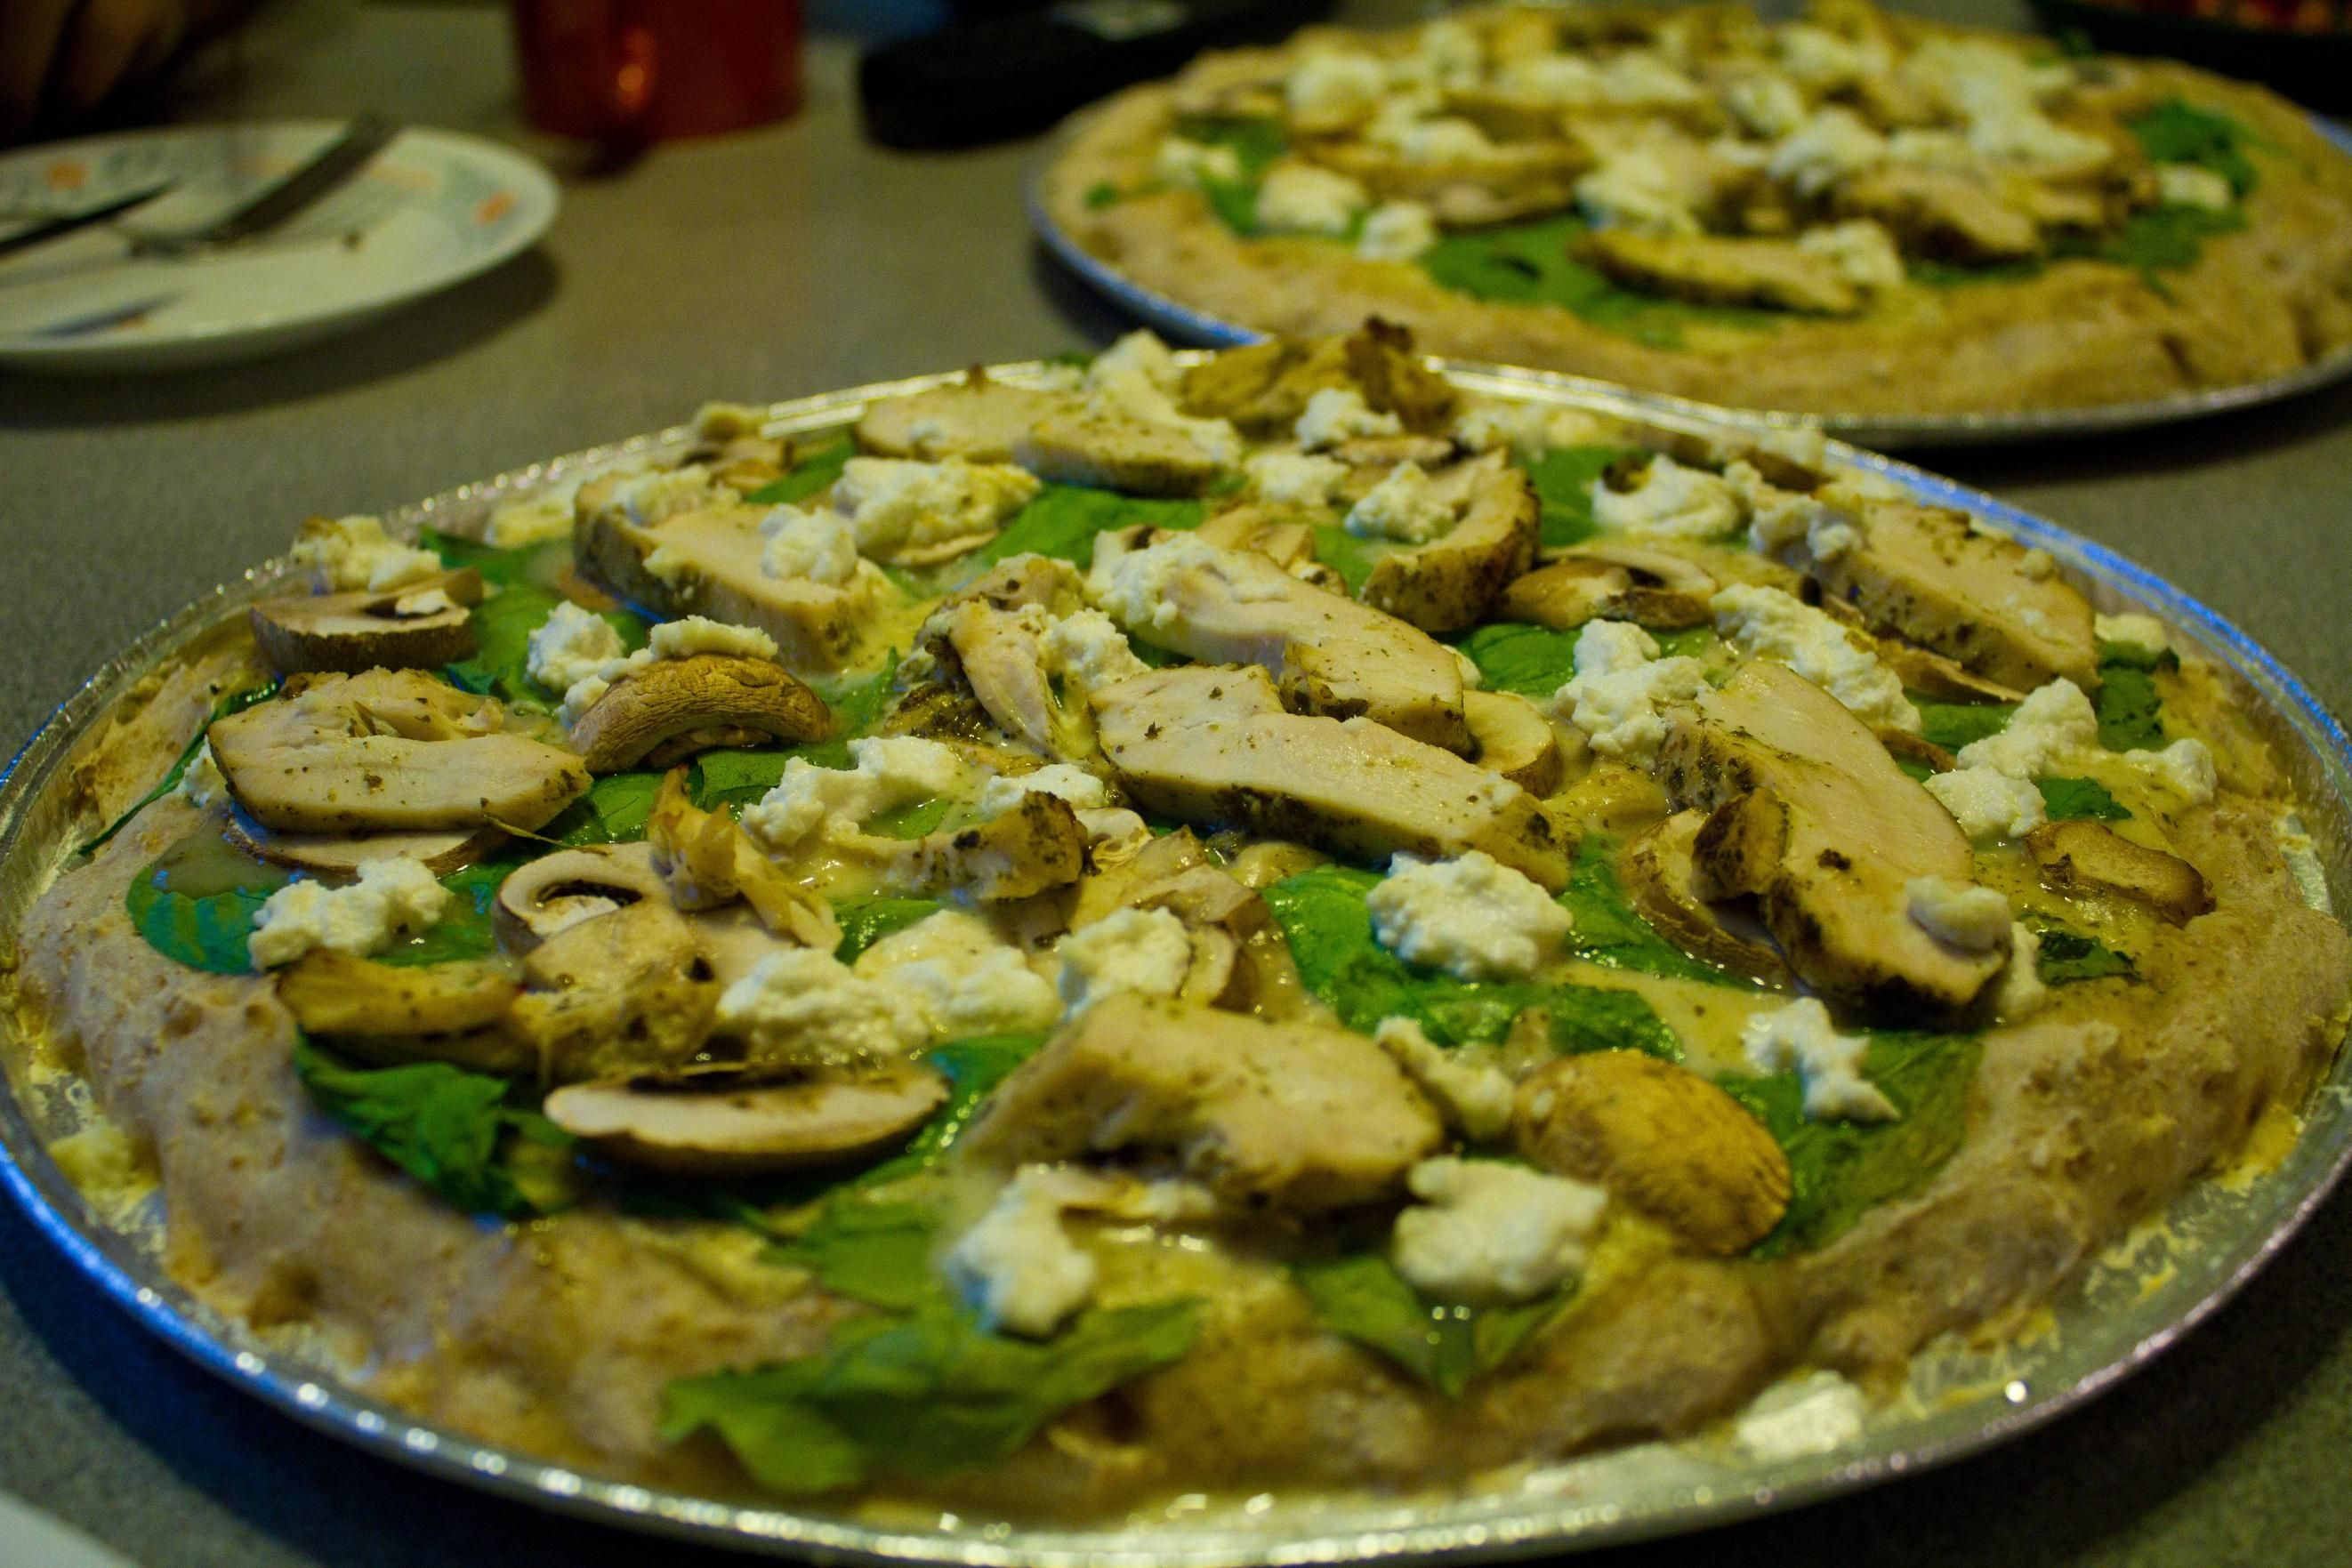 First attempt at pizza from scratch  alfedo sauce, spinach, pesto chicken, and mushrooms.